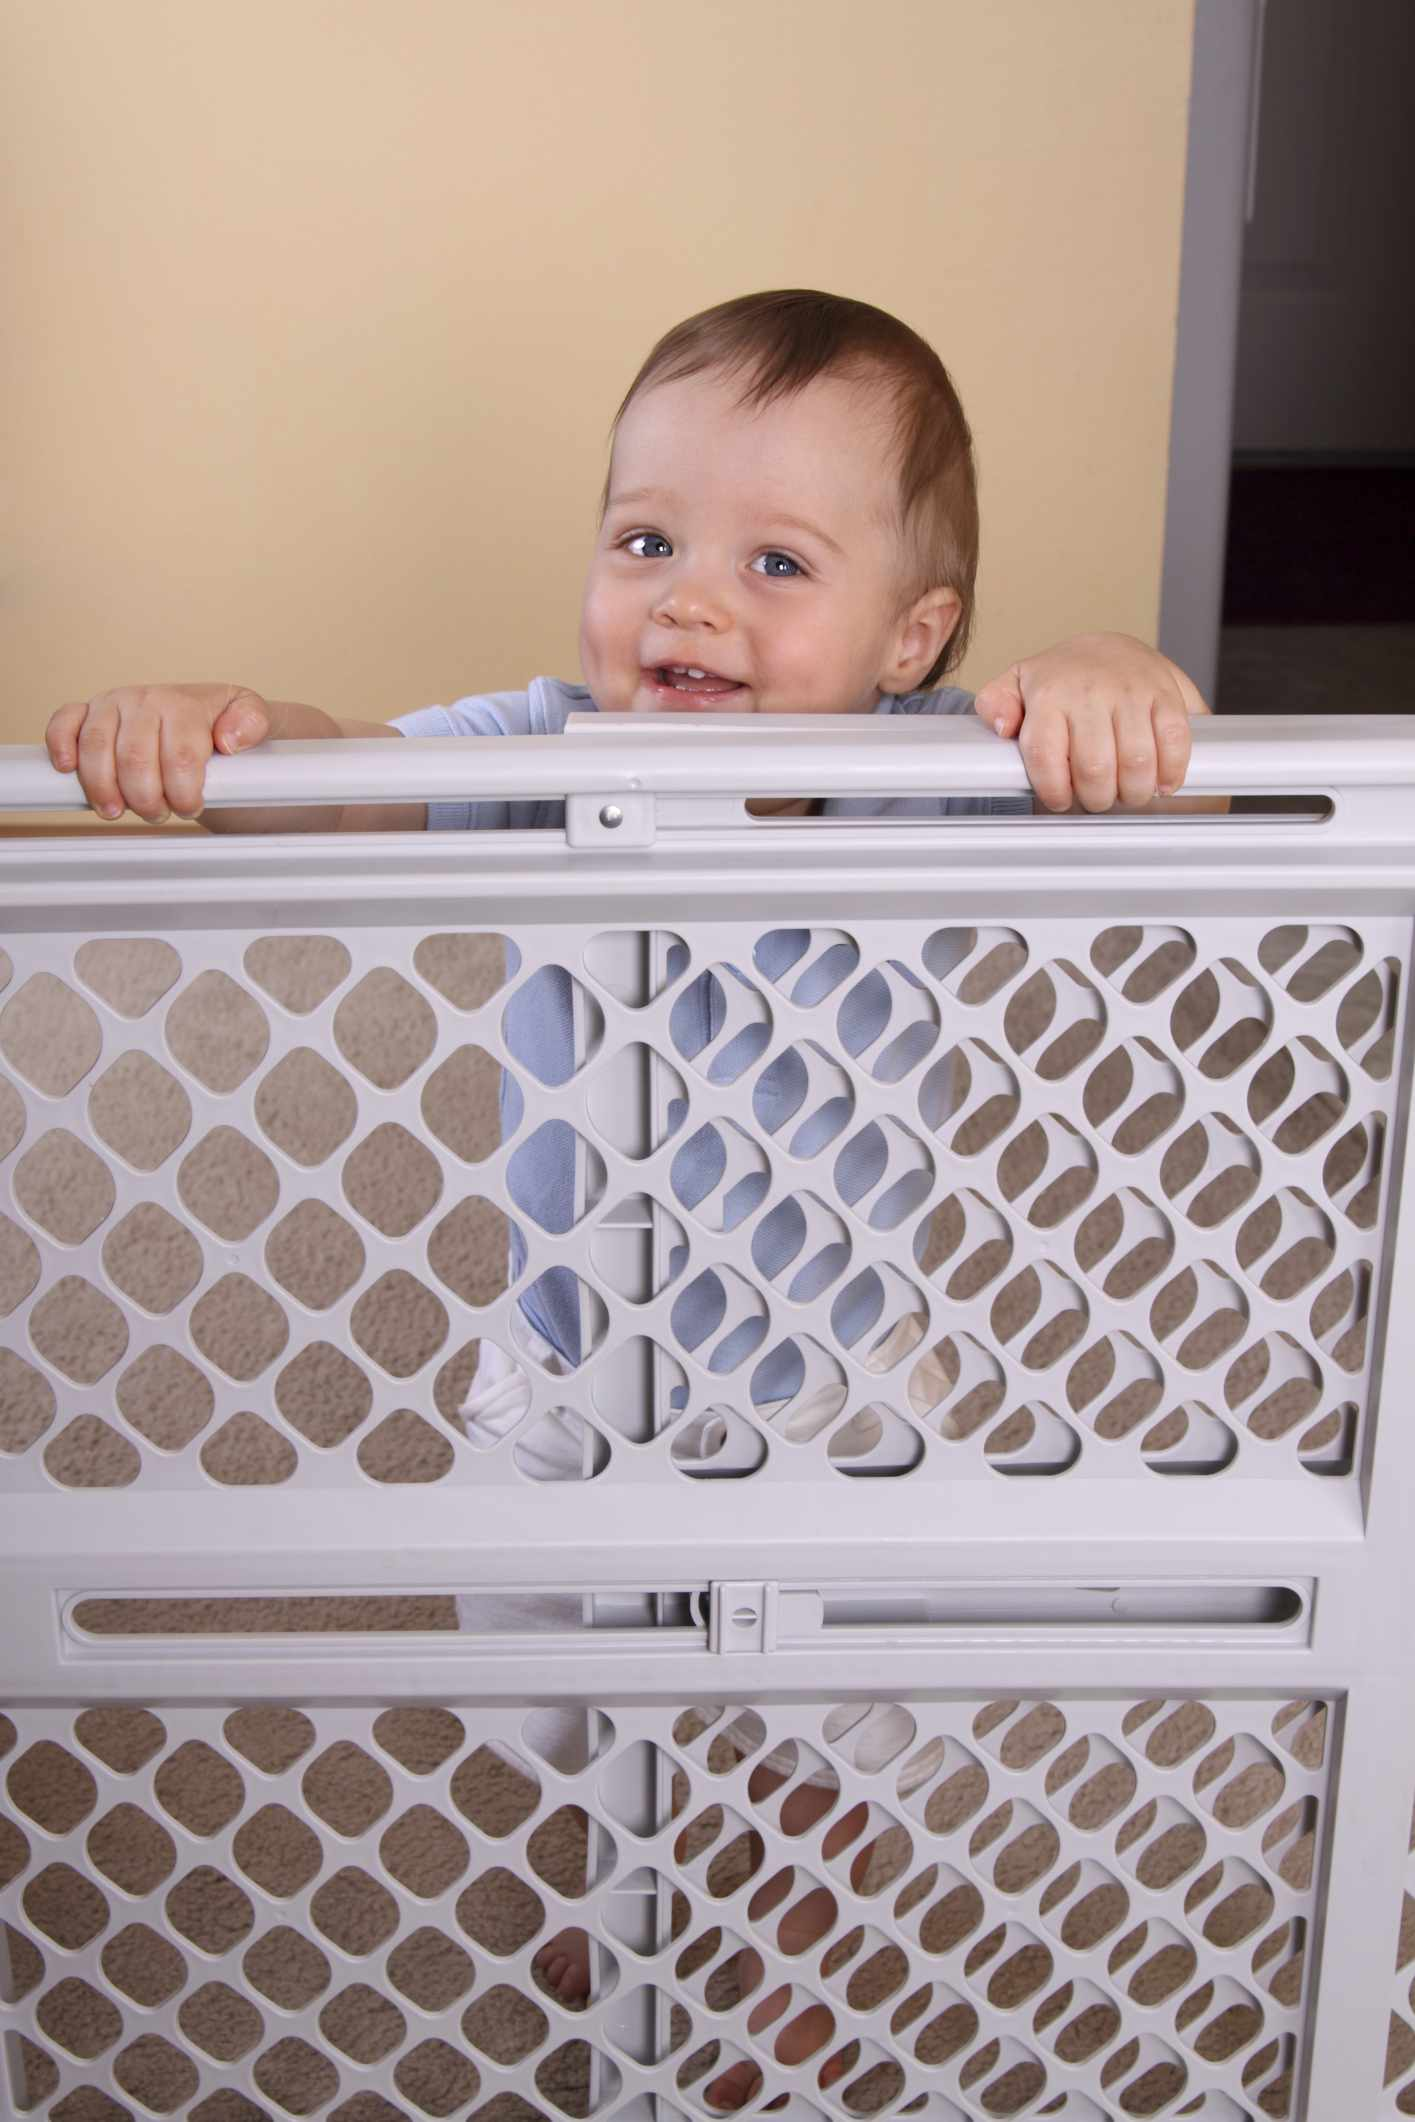 Childproofing Checklist How to Baby Proof the Nursery